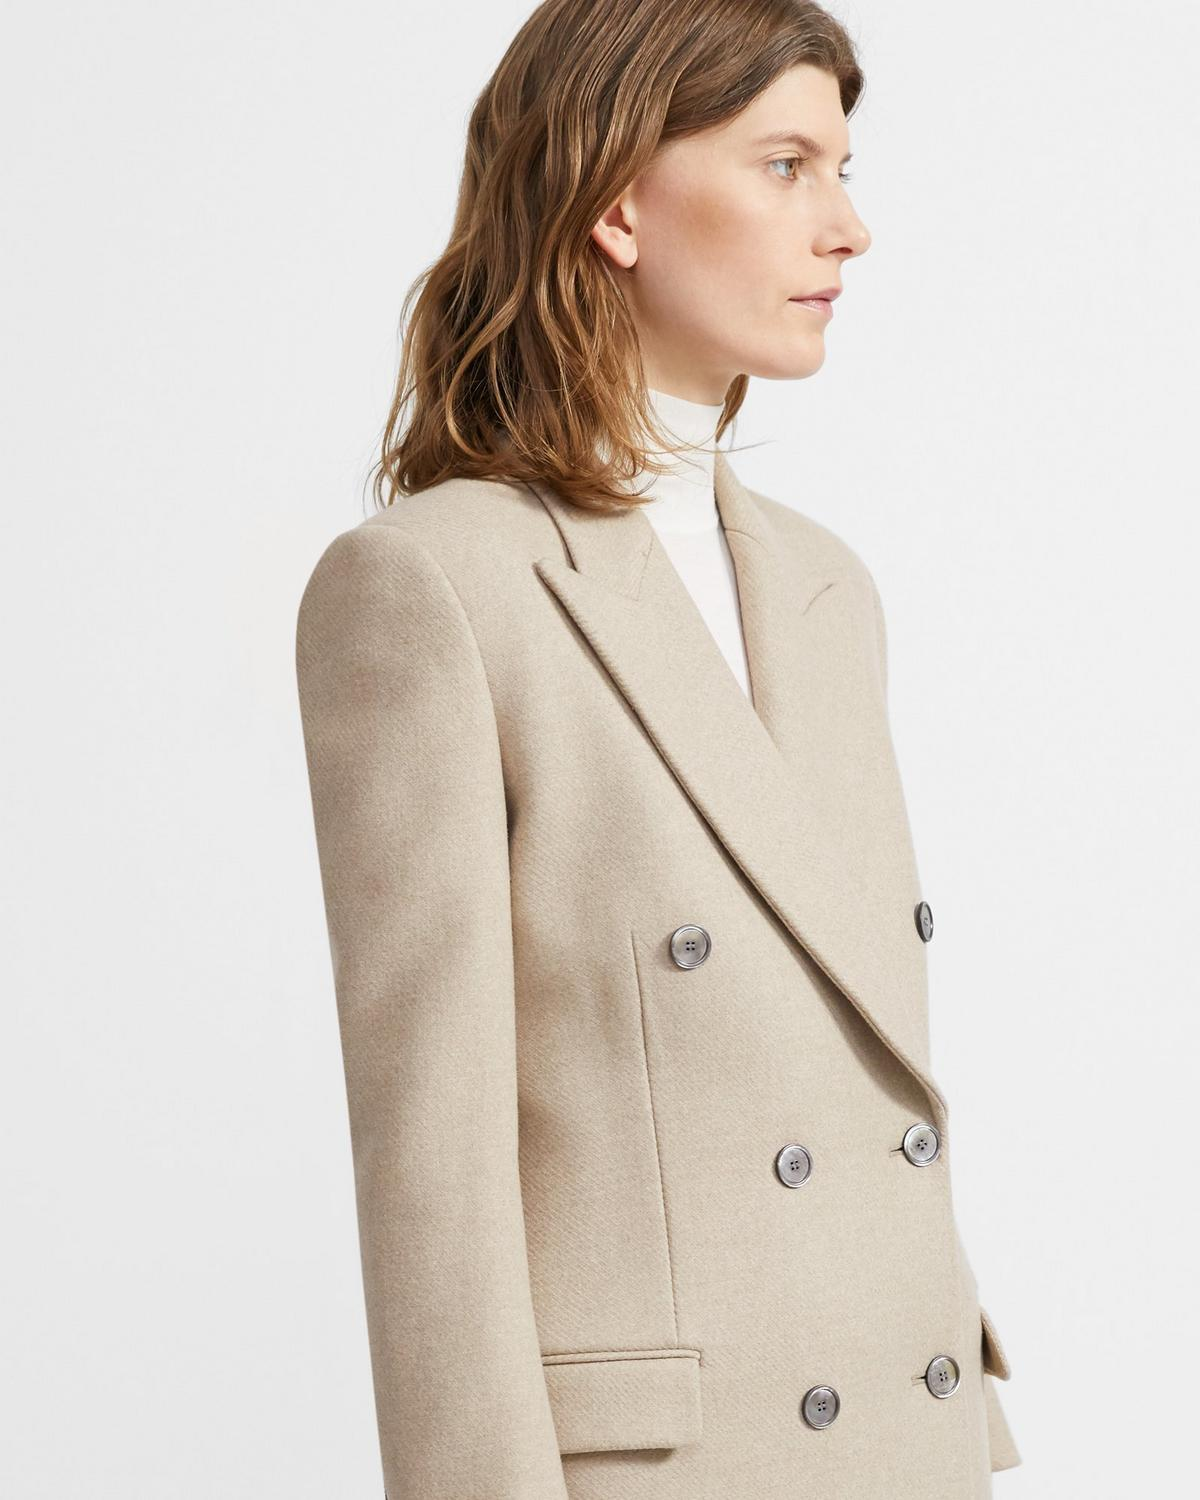 Heavy Wool Twill Tailored Coat 0 - click to view larger image